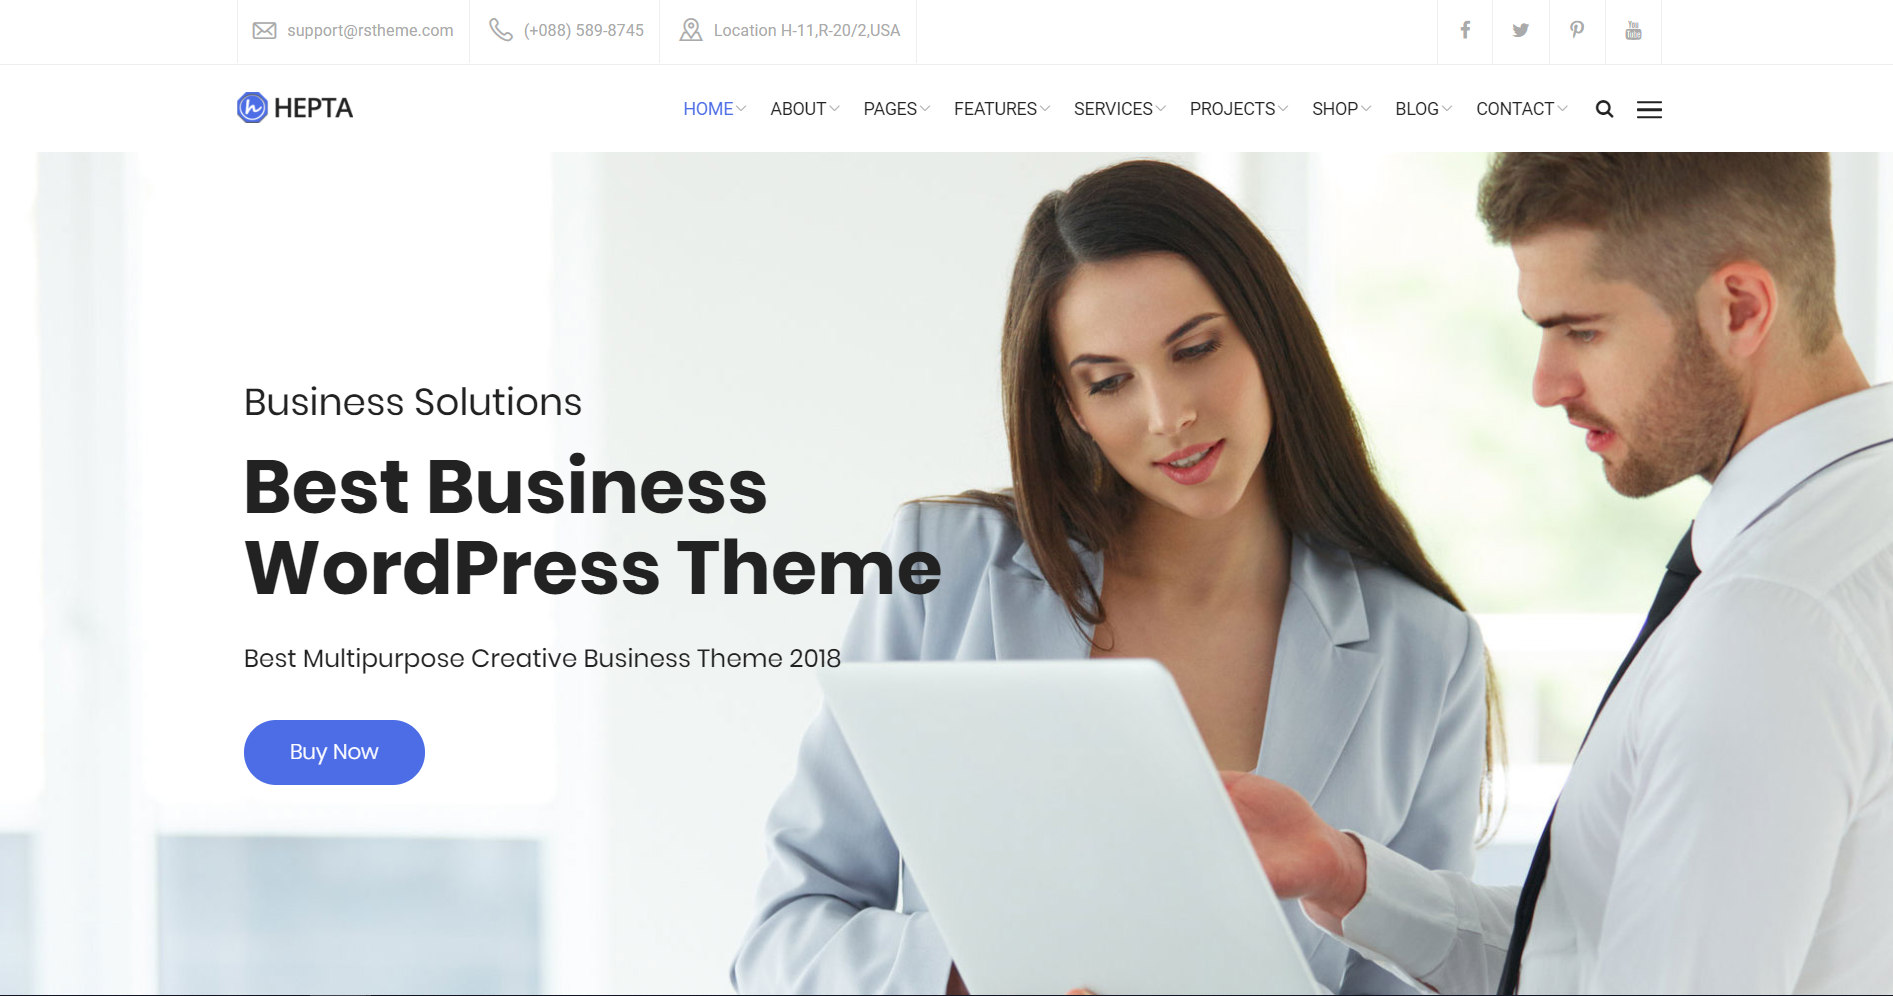 17. Hepta - Multipurpose Business WordPress Theme